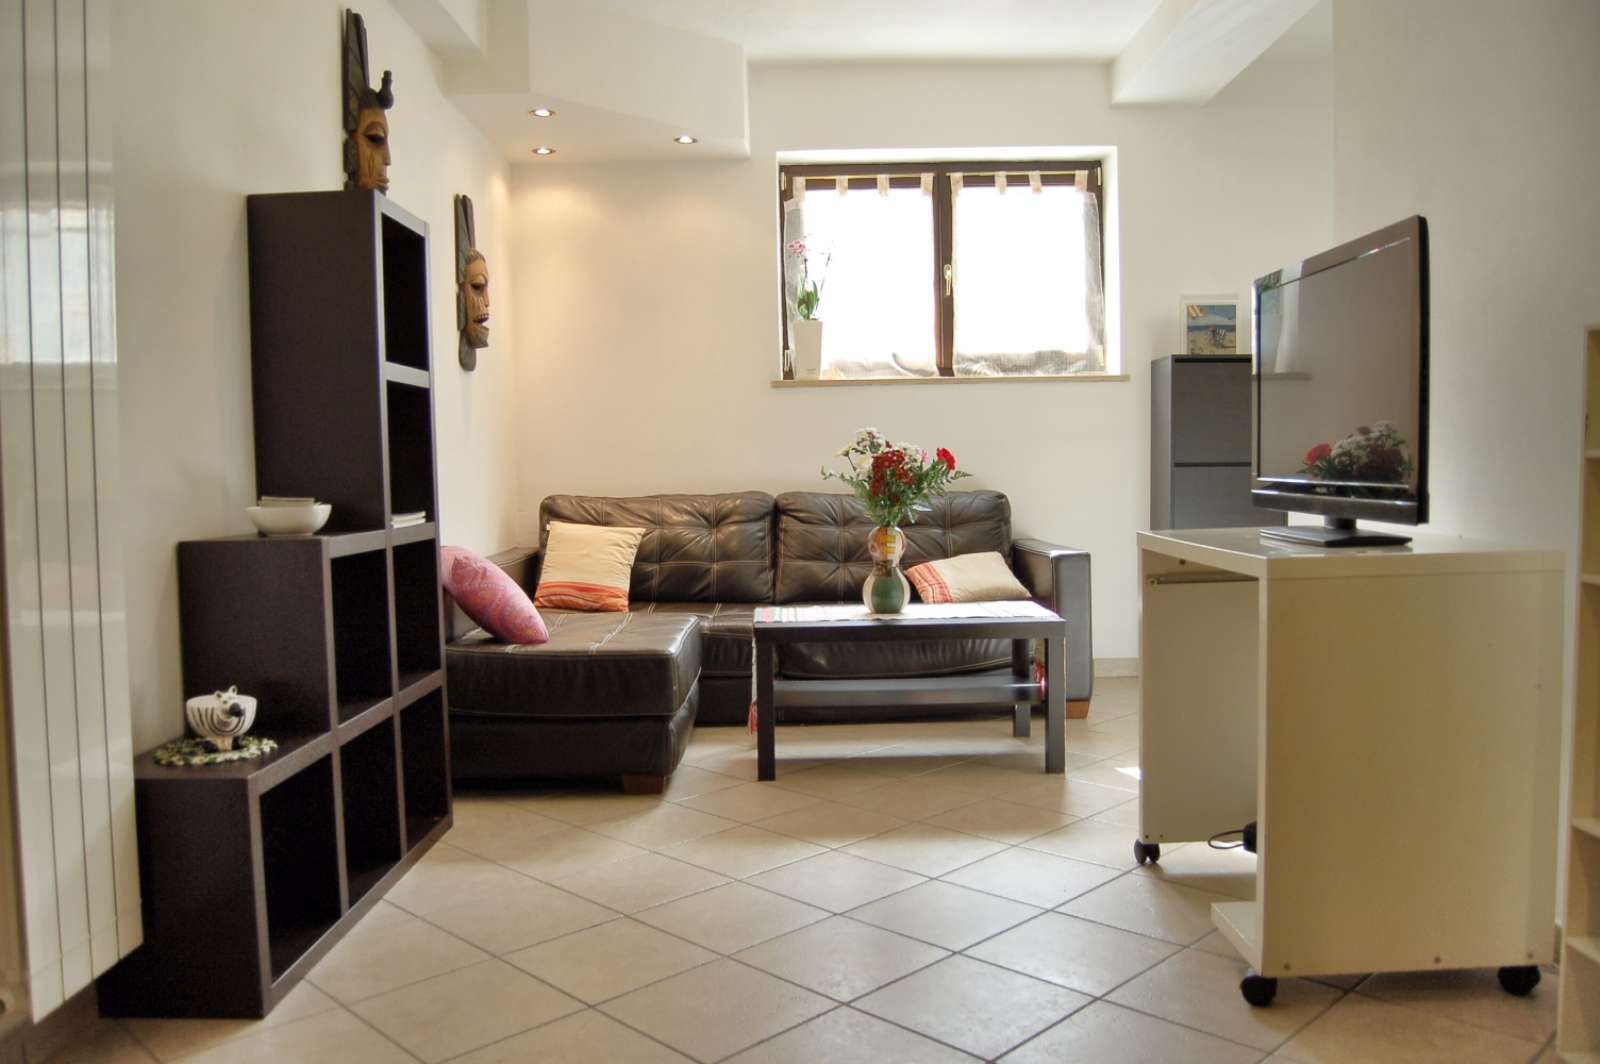 Furnished 1 Bedroom Apartment For Rent In Cologno Milan Ref 88679 Spotahome